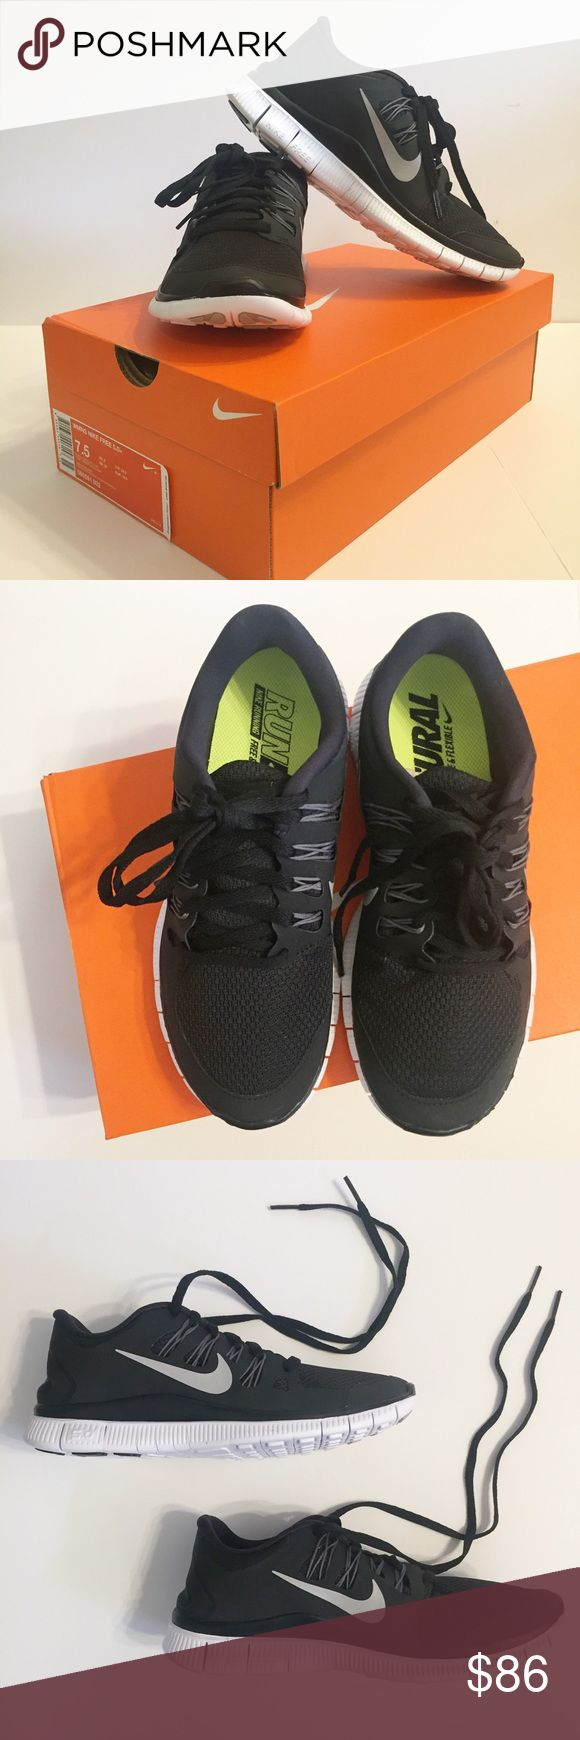 NWT Nike Free 5.0 Black & Metallic Running Shoe Brand new in box! Women's Nike Free 5.0+ in size 7 1/2 - 7.5. Color is Black & Metallic Silver. All over black with silver Nike Swoosh. Nike Running - Free & Flexible. These shoes are lightweight. I personally think it fits a little small/narrow. These shoes are no longer available in stores. Were only worn for try-on in stores. Great condition!!! NO TRADES. Nike Shoes Sneakers